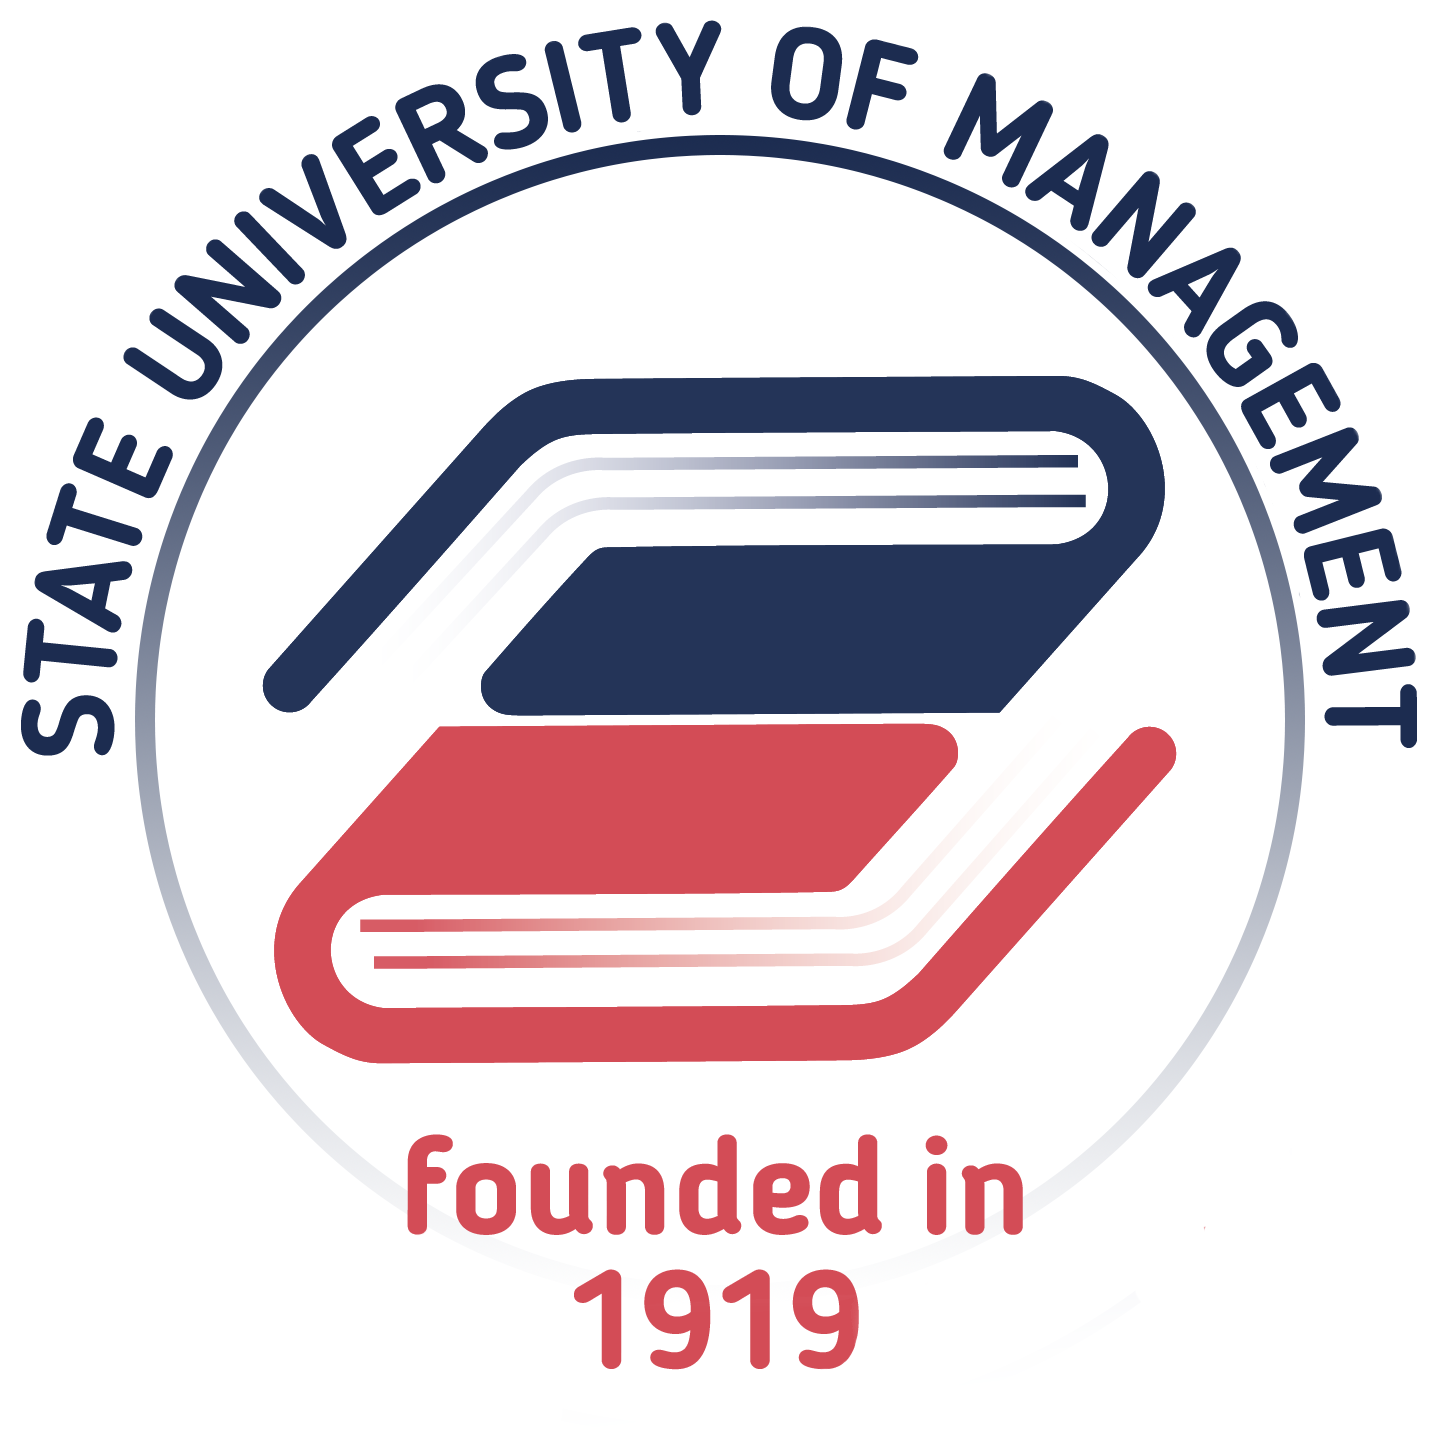 The State University of Management